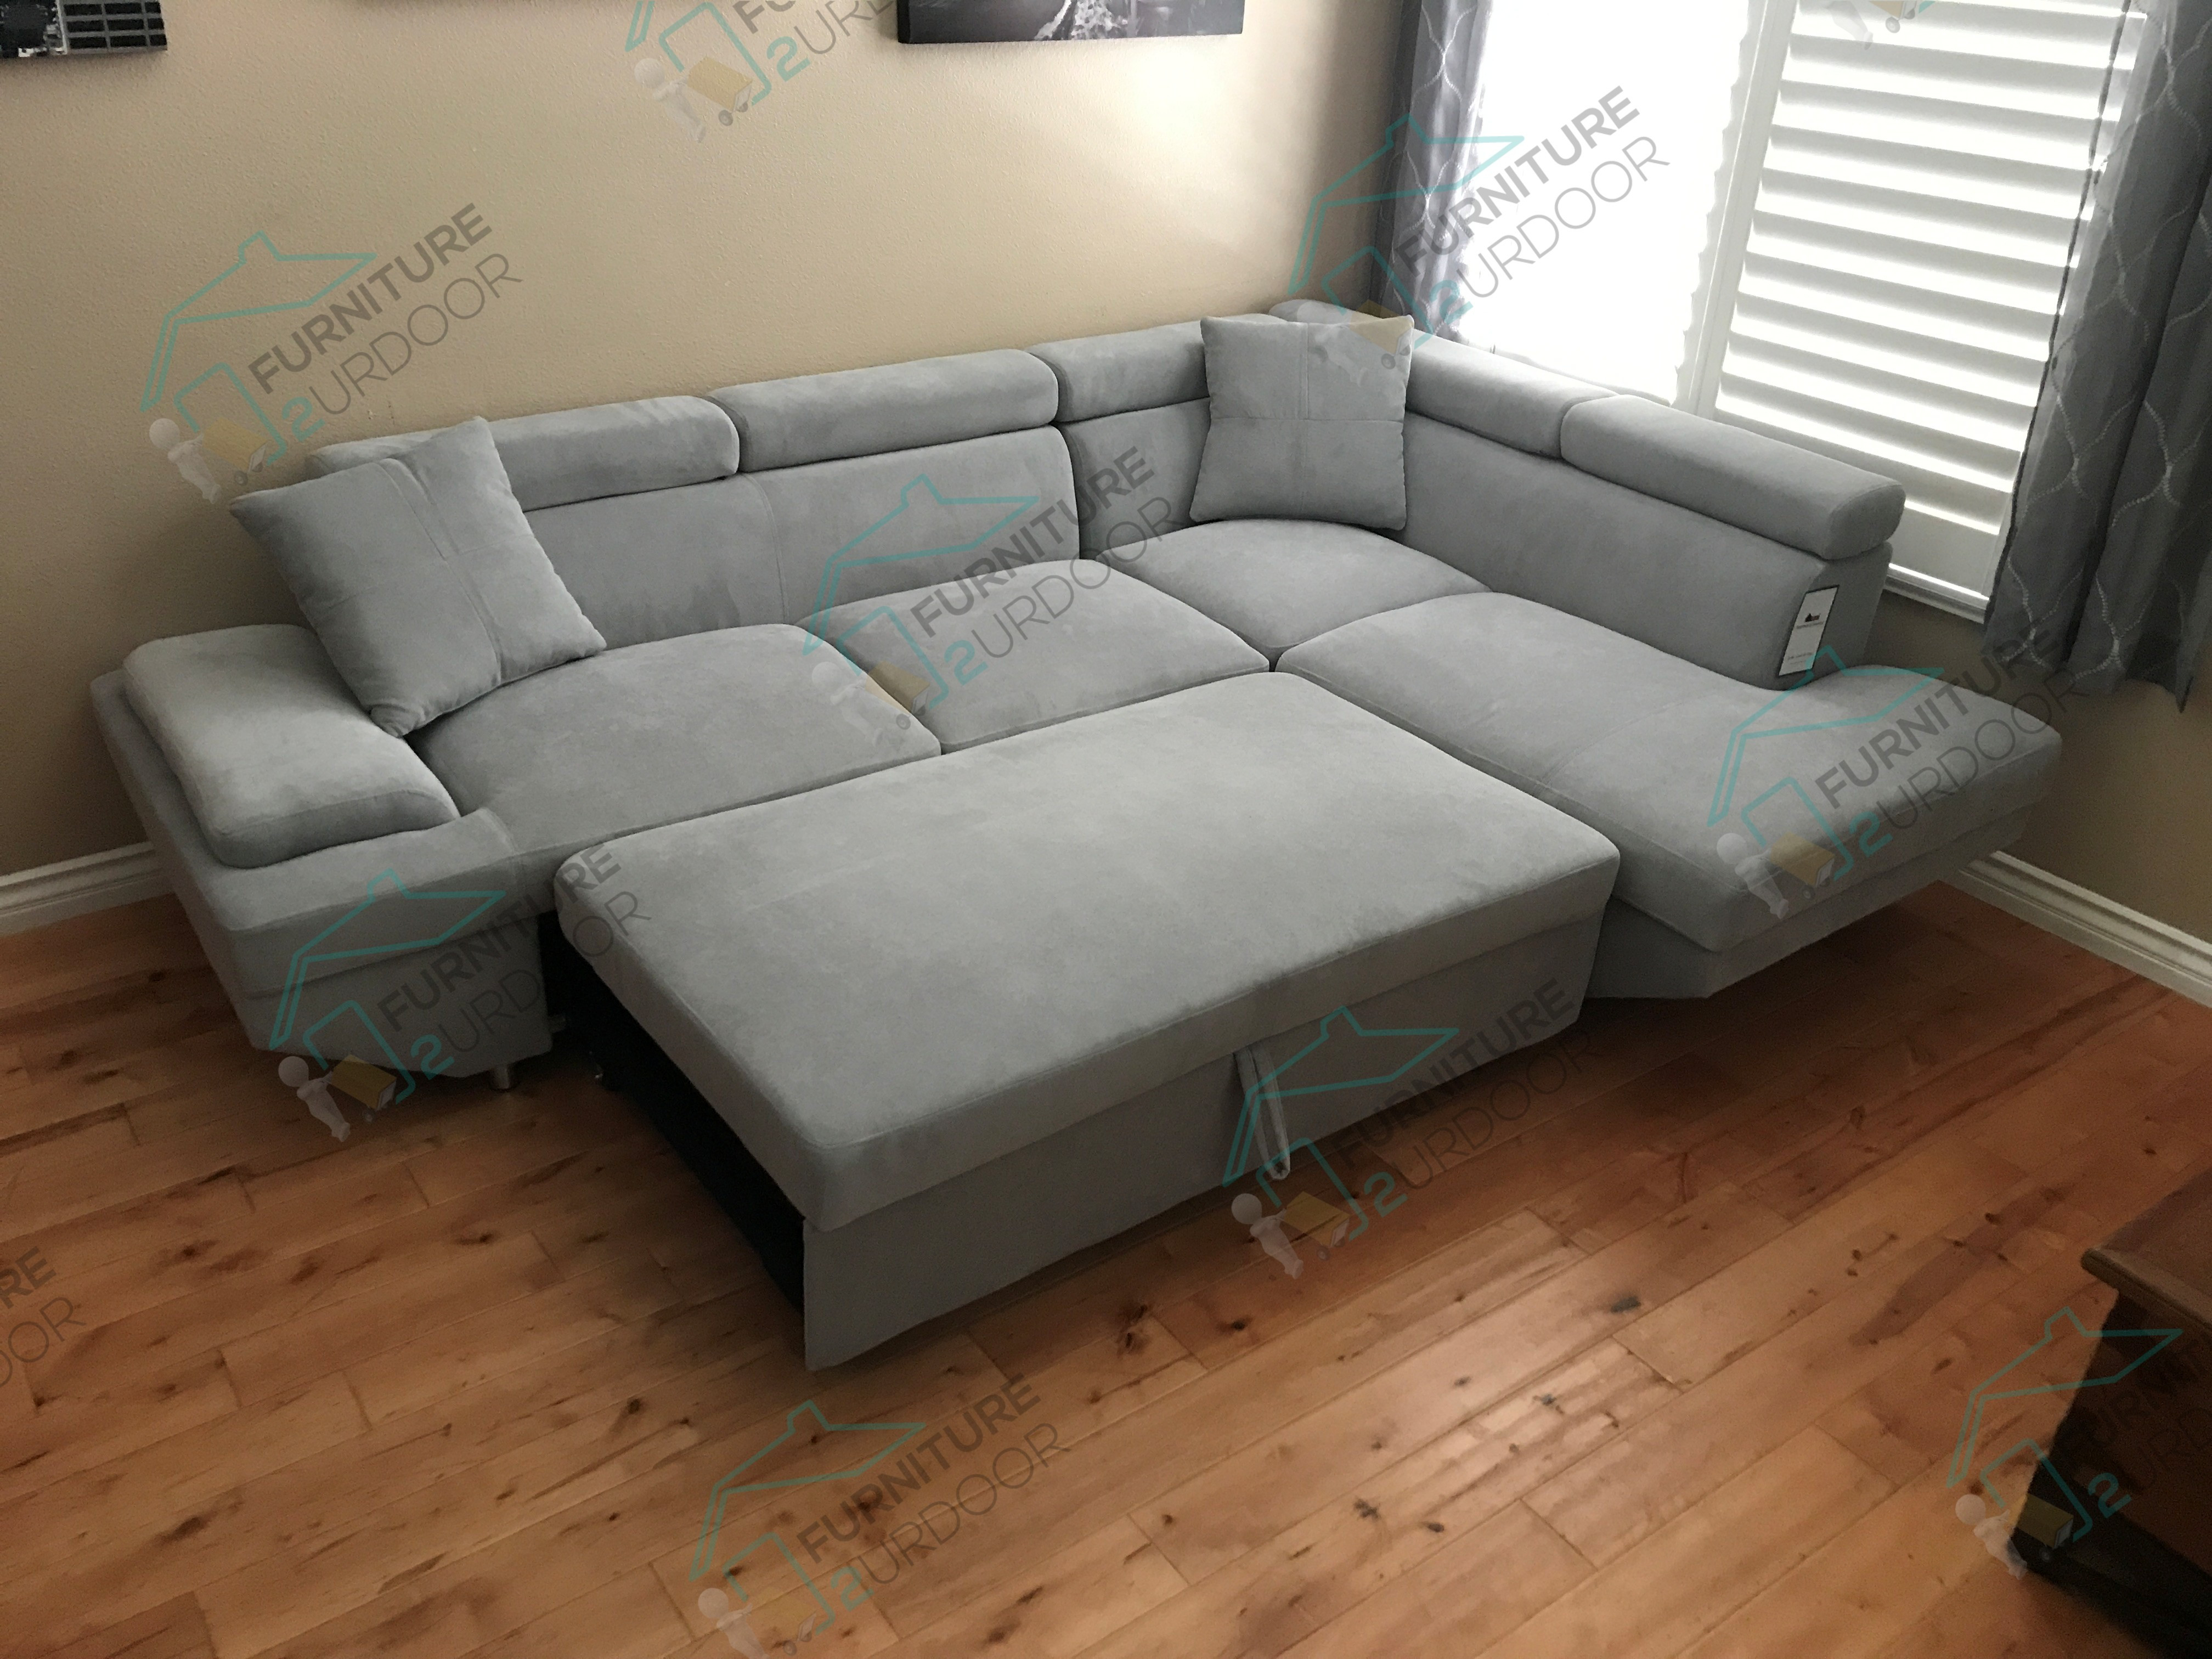 Best ideas about Sofa Bed Sectional . Save or Pin Foreman Contemporary Style Gray Flannelette Fabric Pull Now.